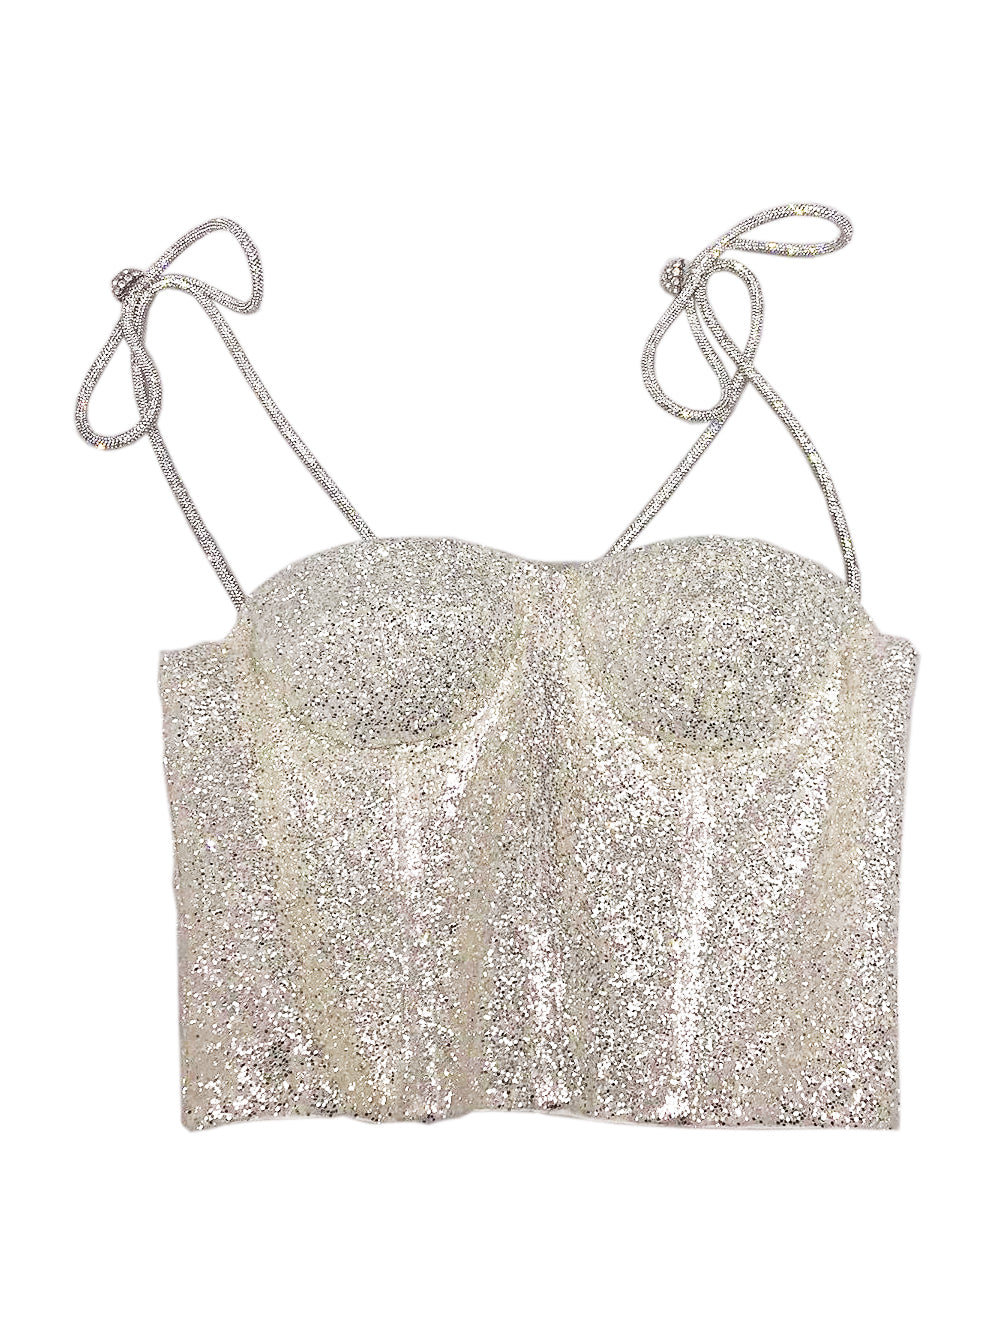 Glitter Corset With Crystal Bow Straps